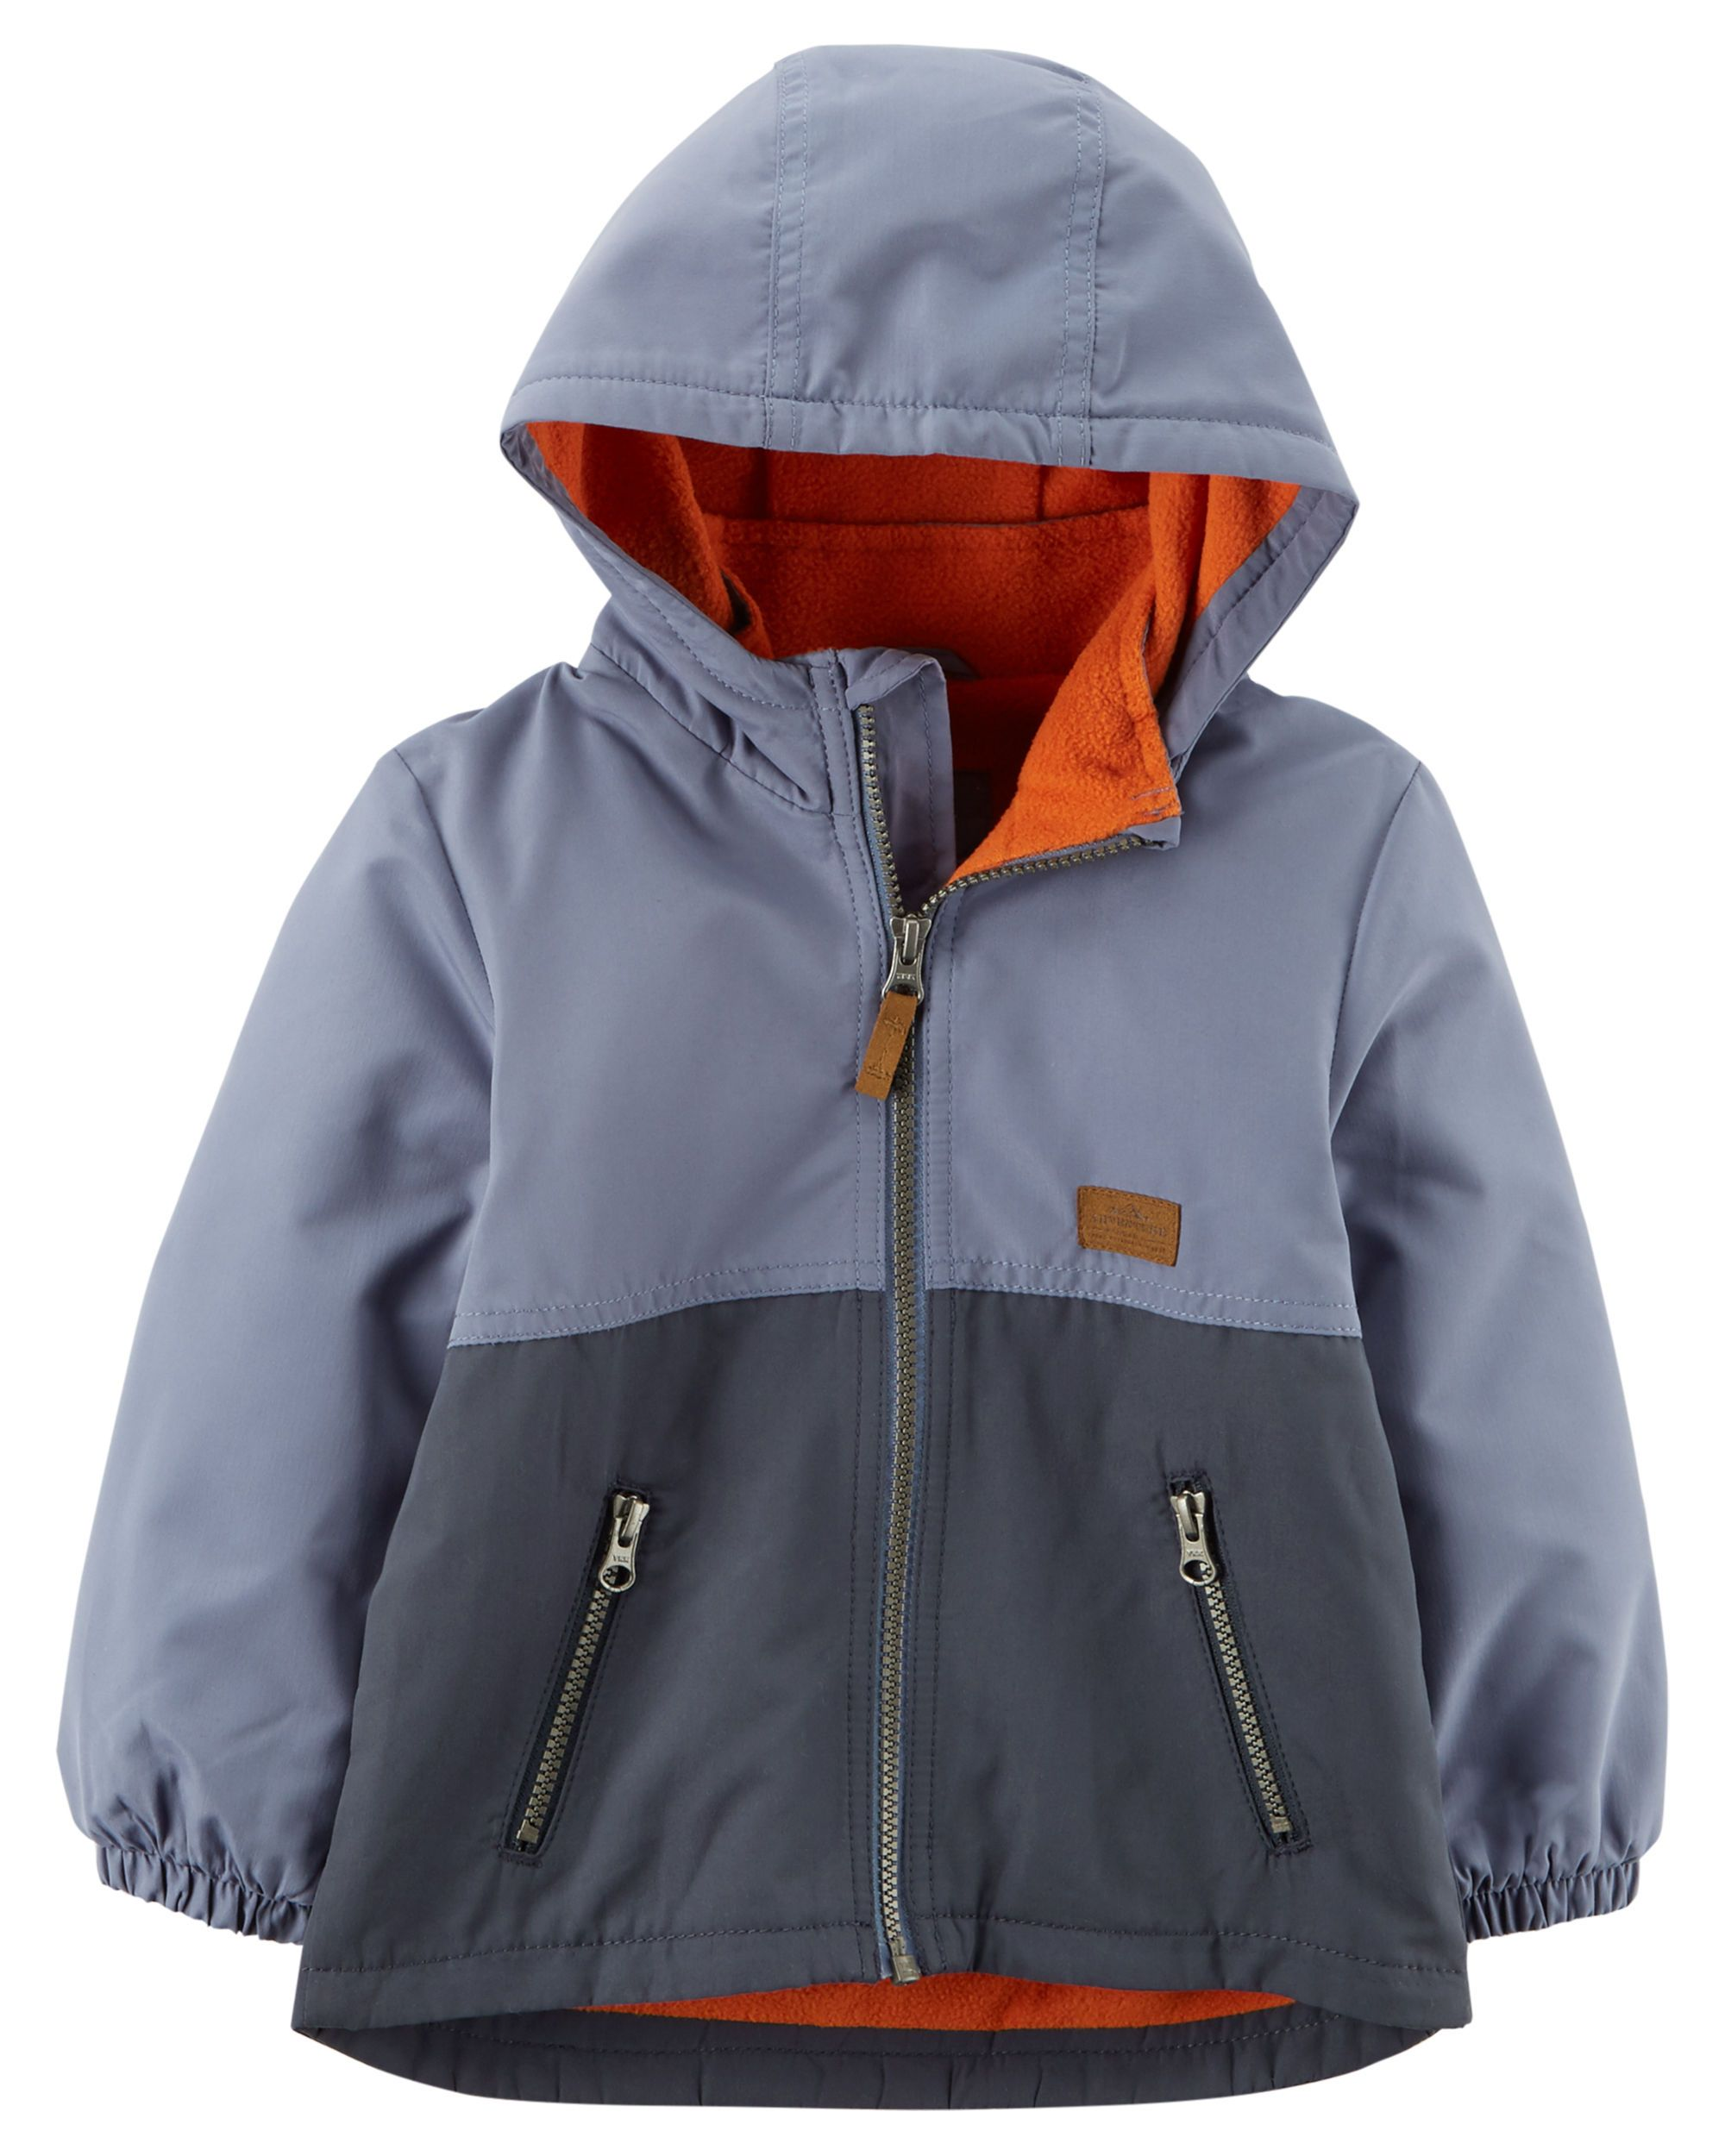 263a88691a6d Toddler Boy Fleece-Lined Midweight Jacket